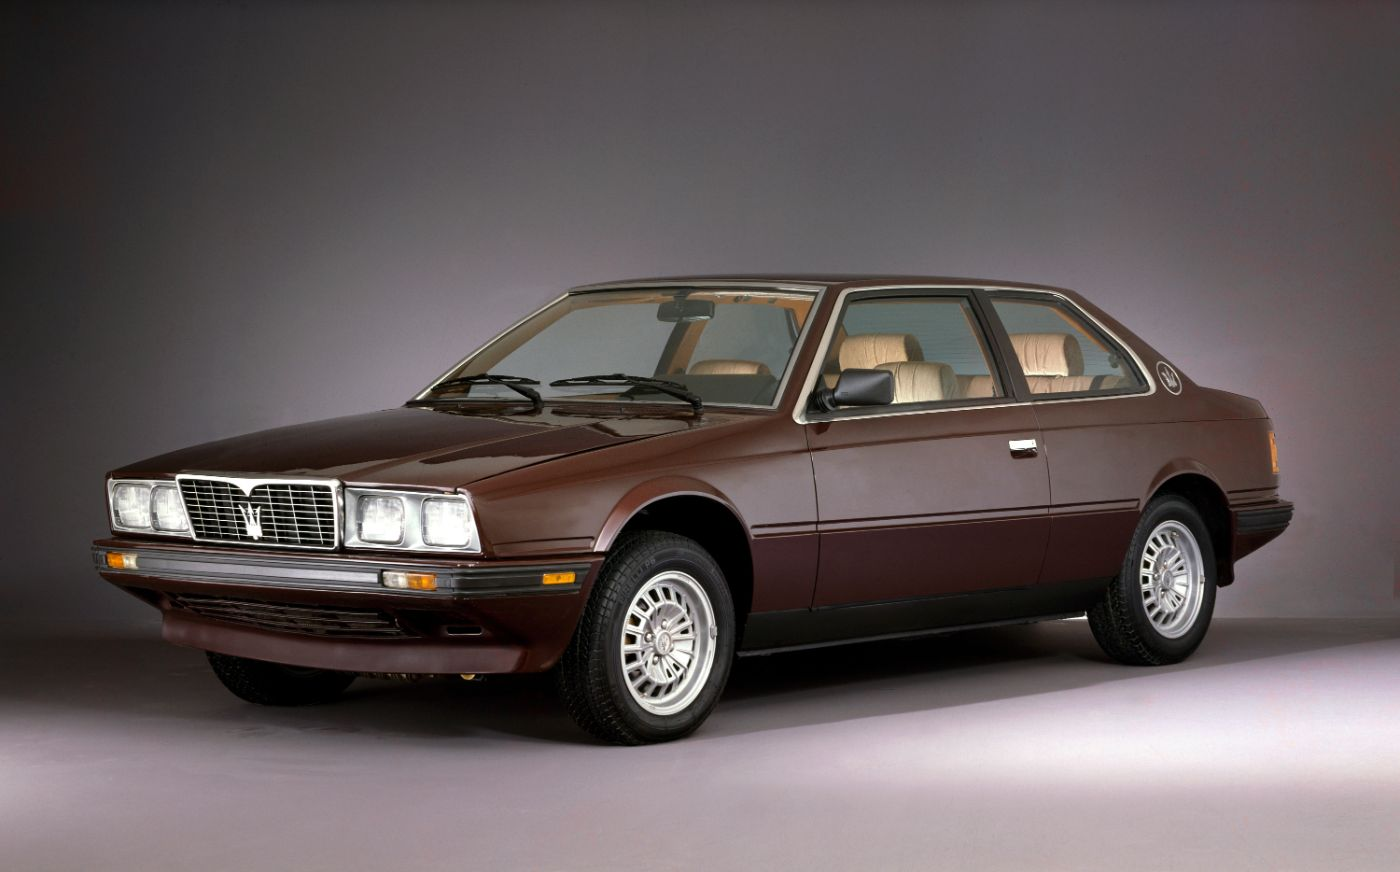 1981 Maserati Biturbo - the classic sporty coupe